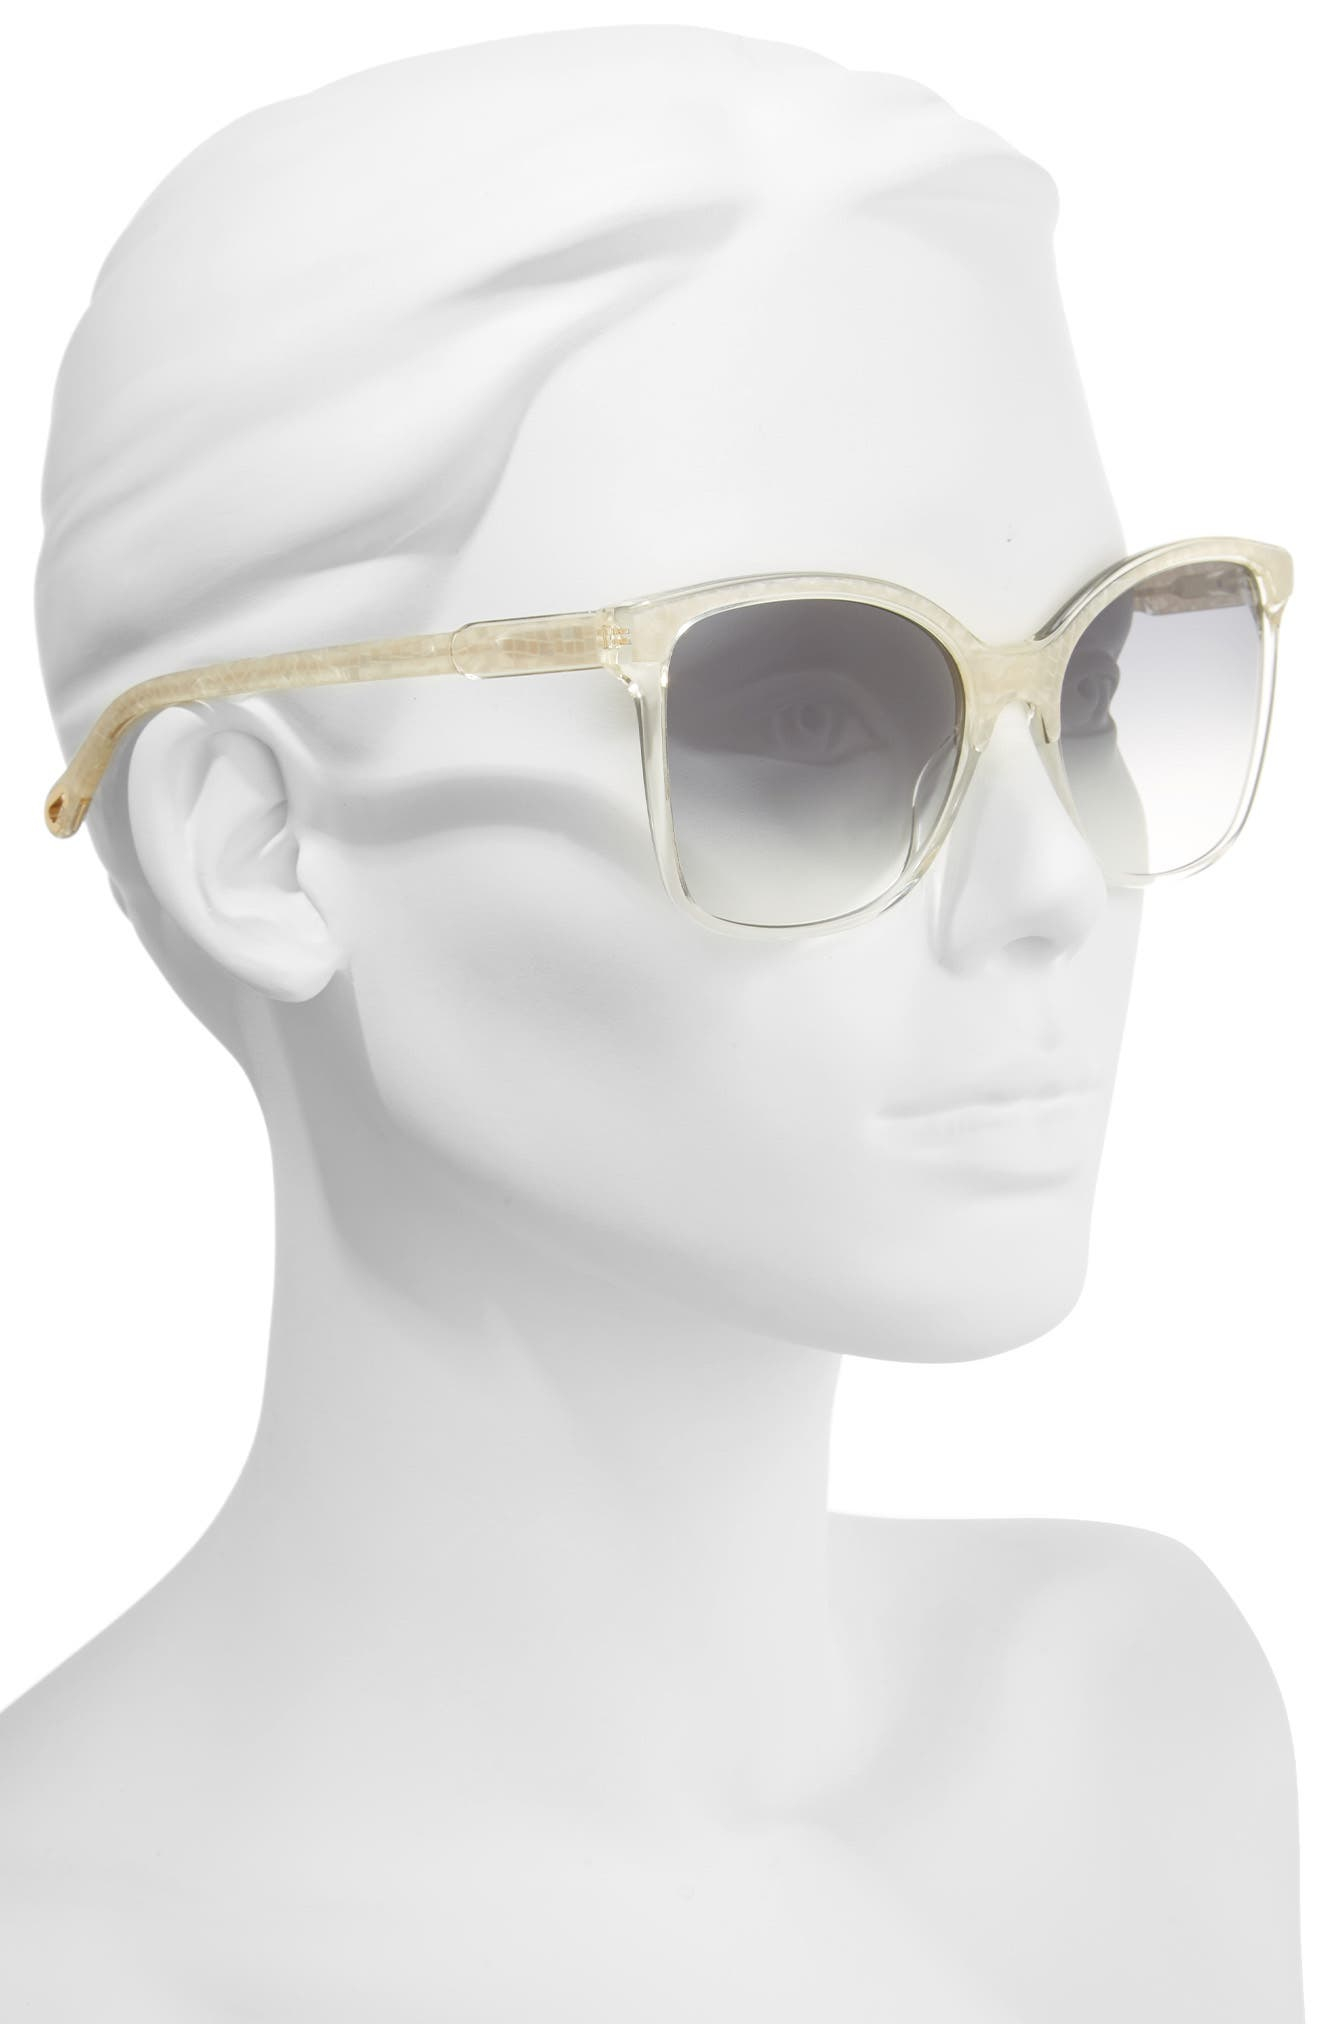 59mm Brow Bar Sunglasses,                             Alternate thumbnail 2, color,                             Pearl/ Champagne